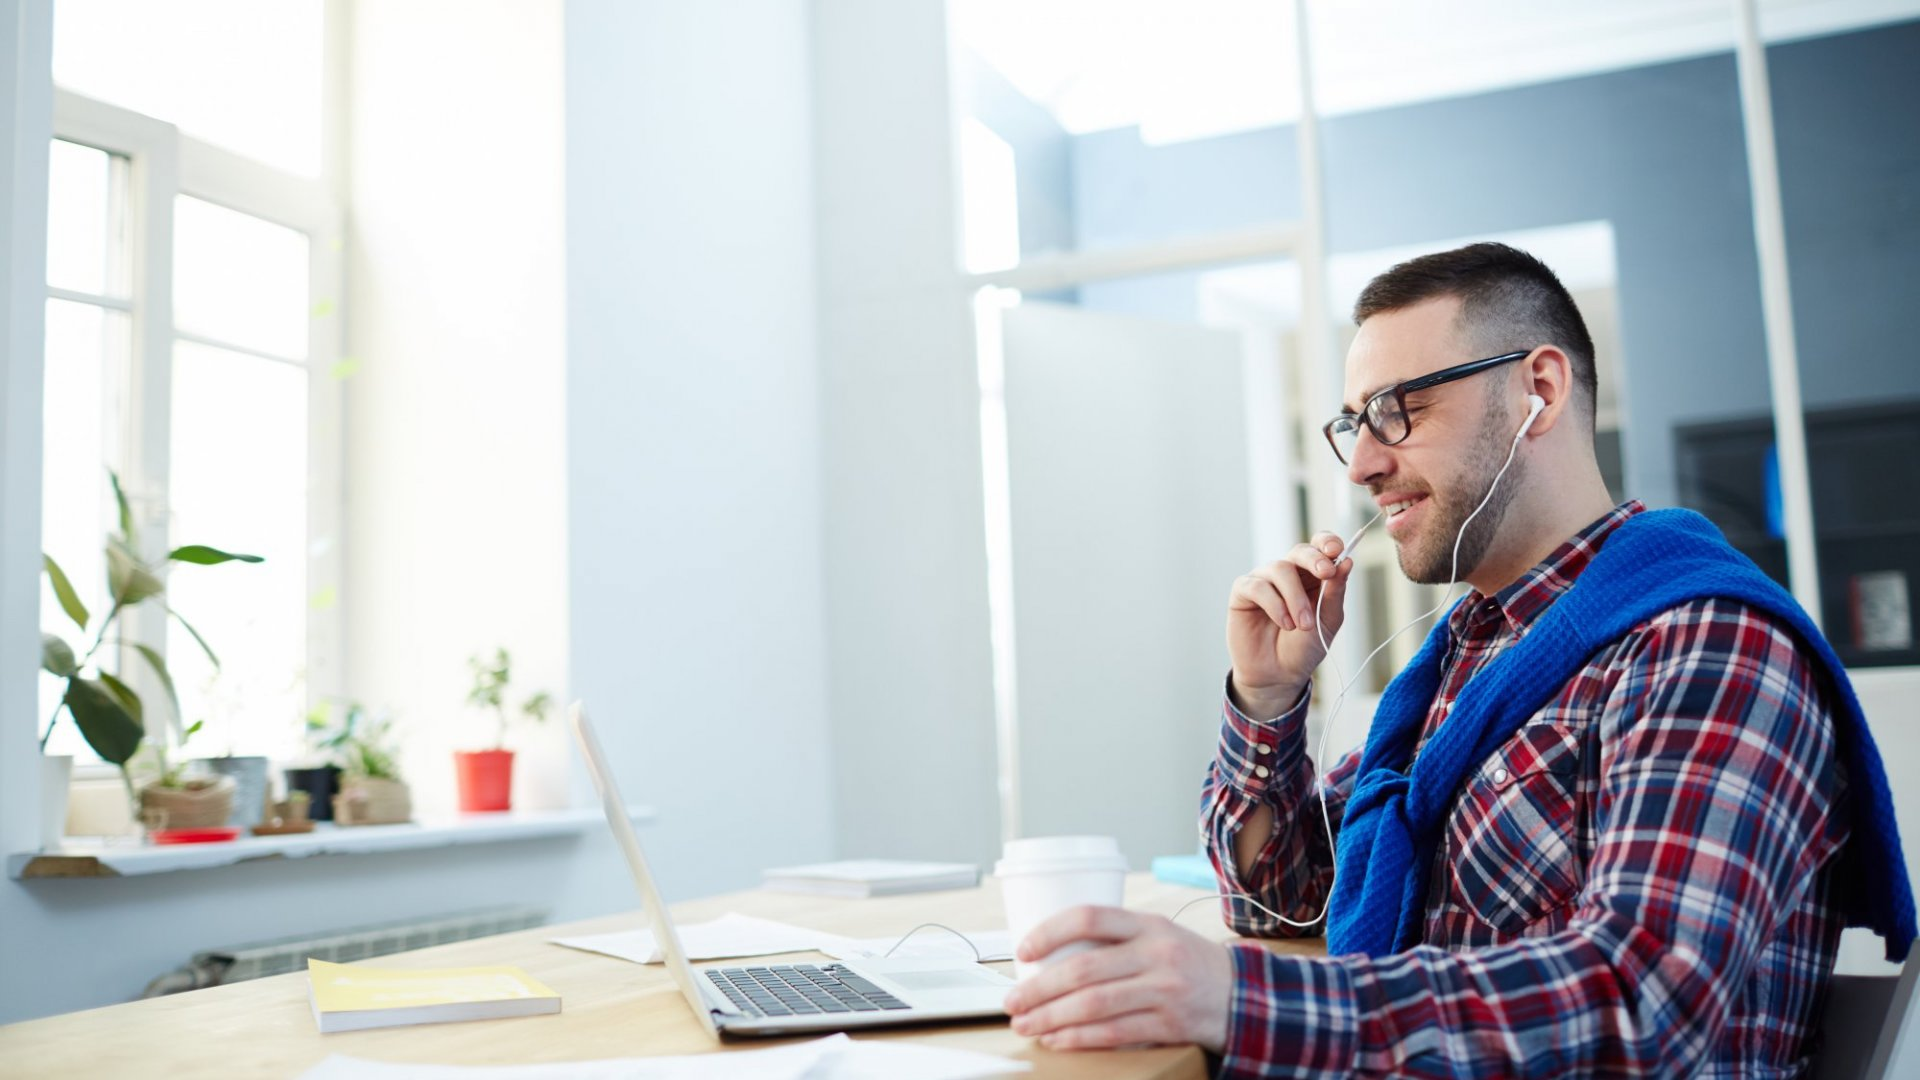 4 Ways to Motivate Your Remote Employees